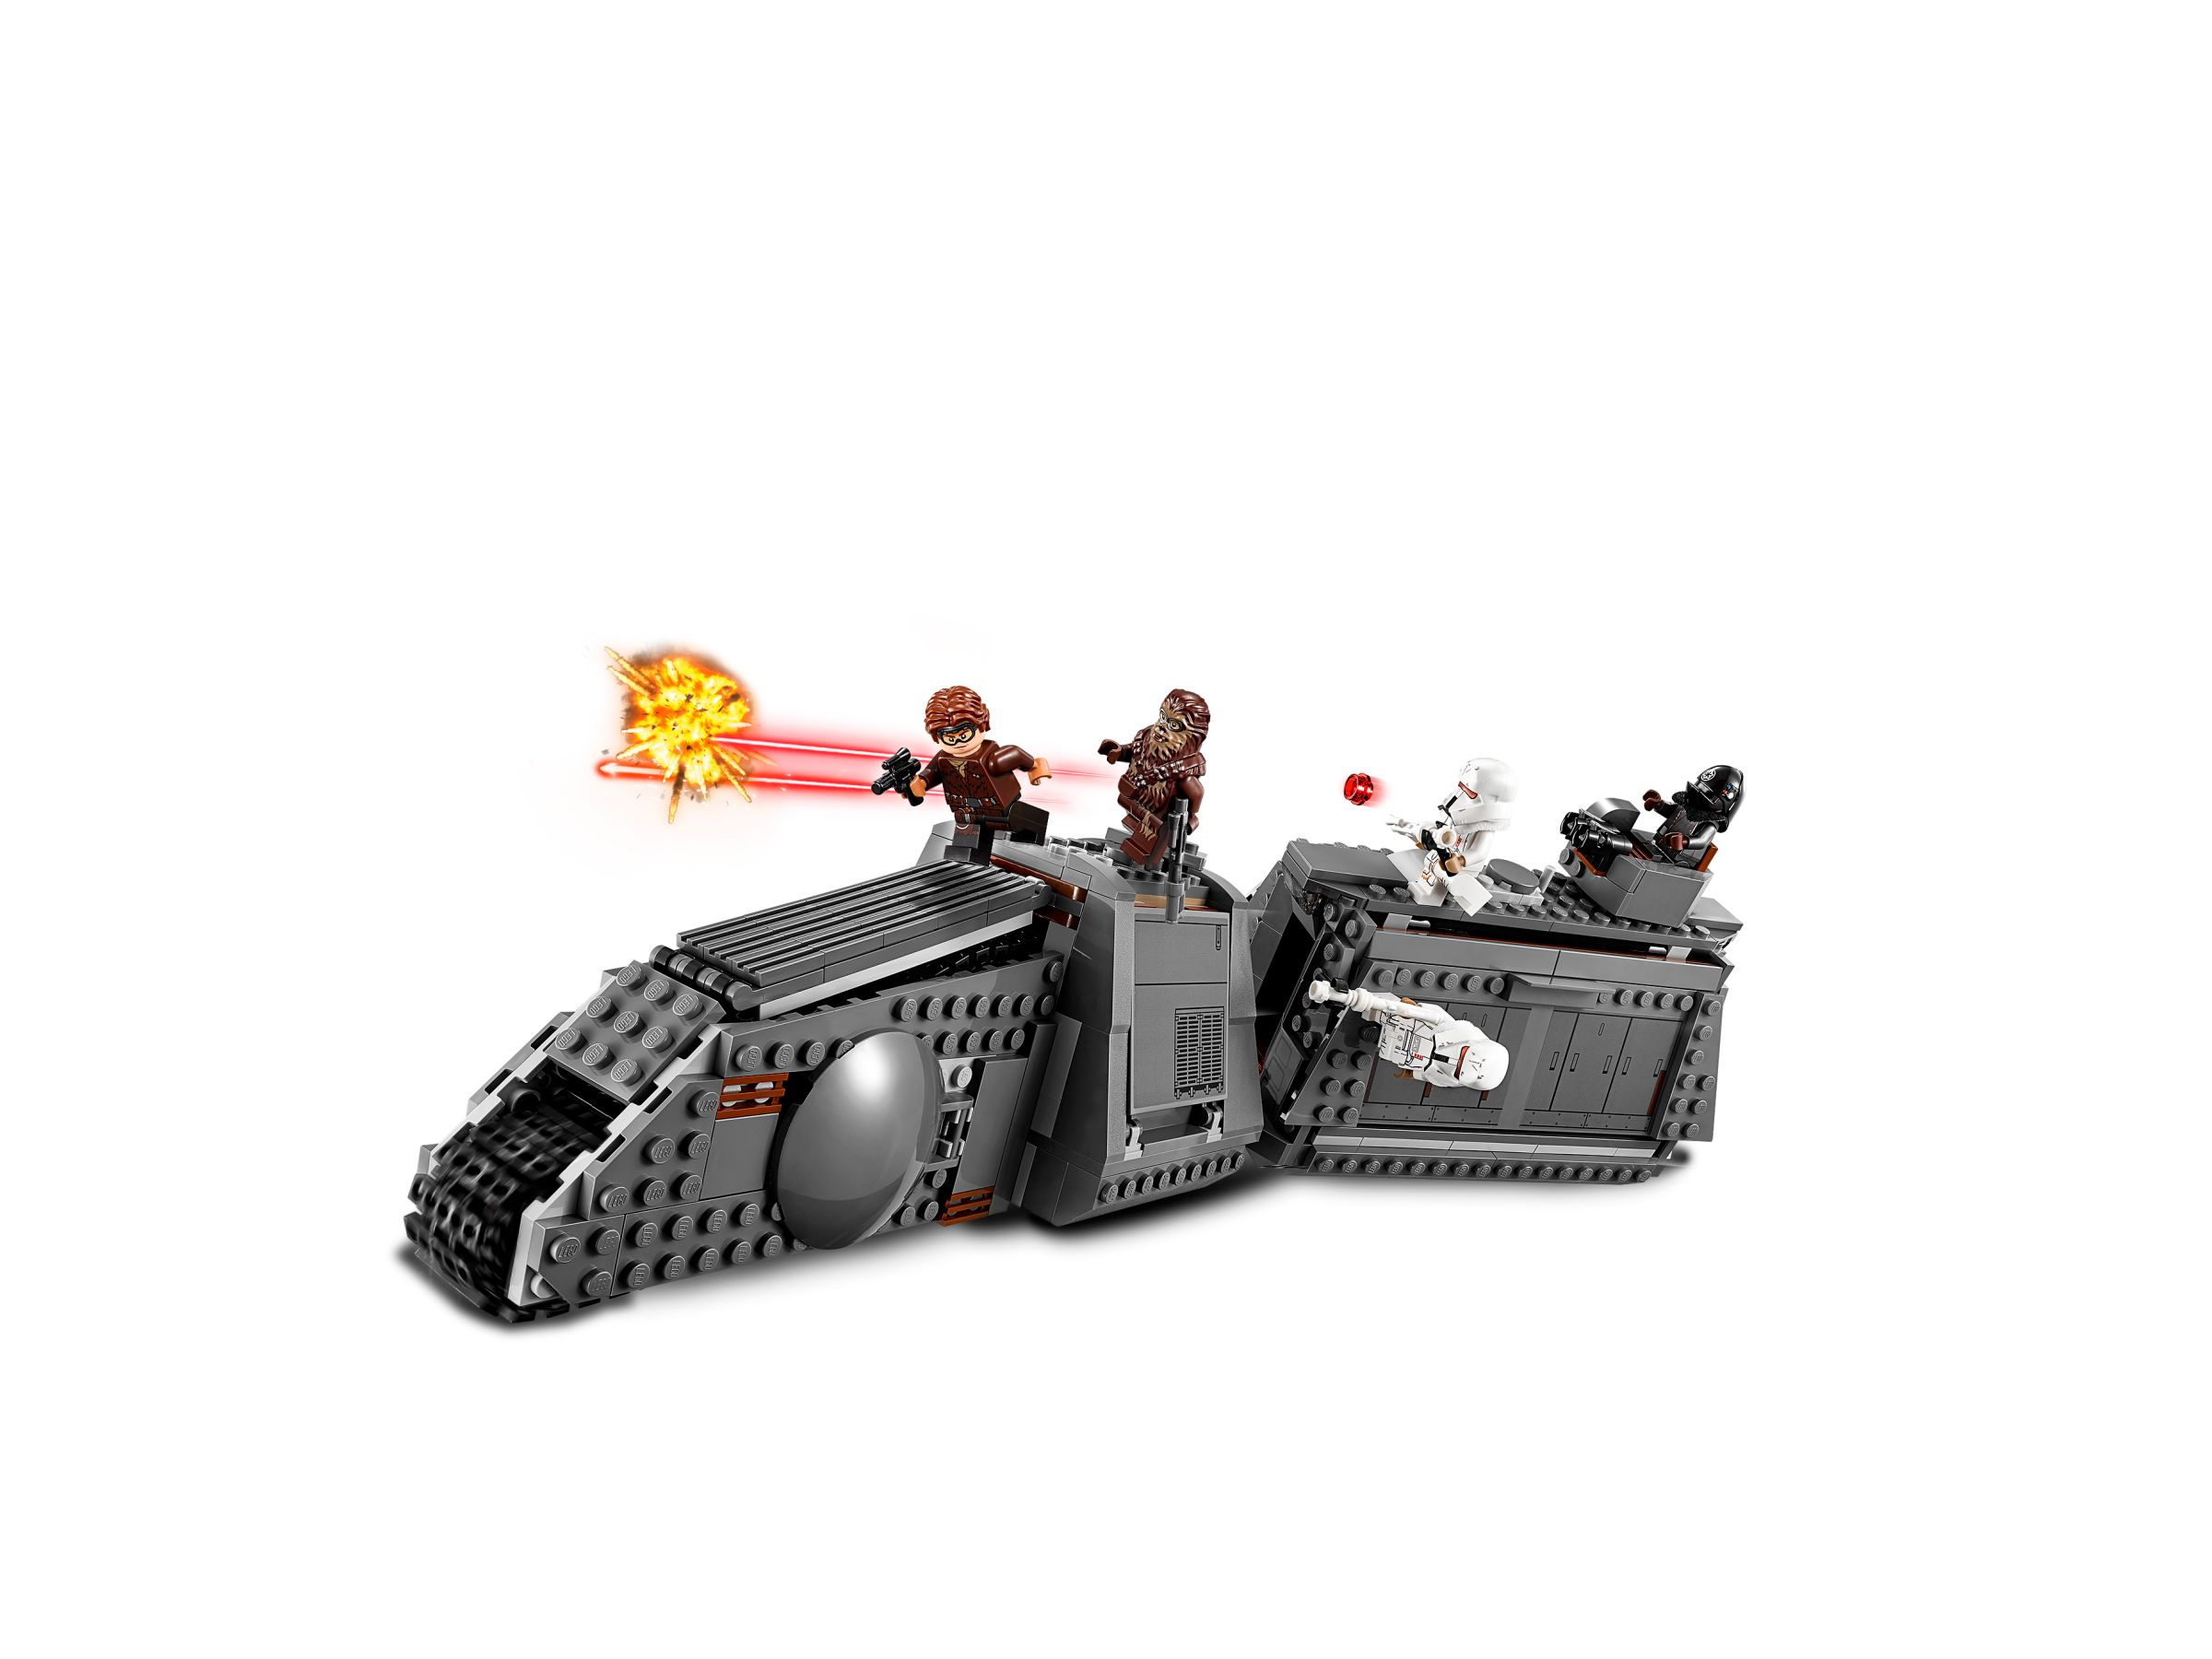 LEGO Star Wars 75217 Imperial Conveyex Transport™ LEGO_75217_alt2.jpg